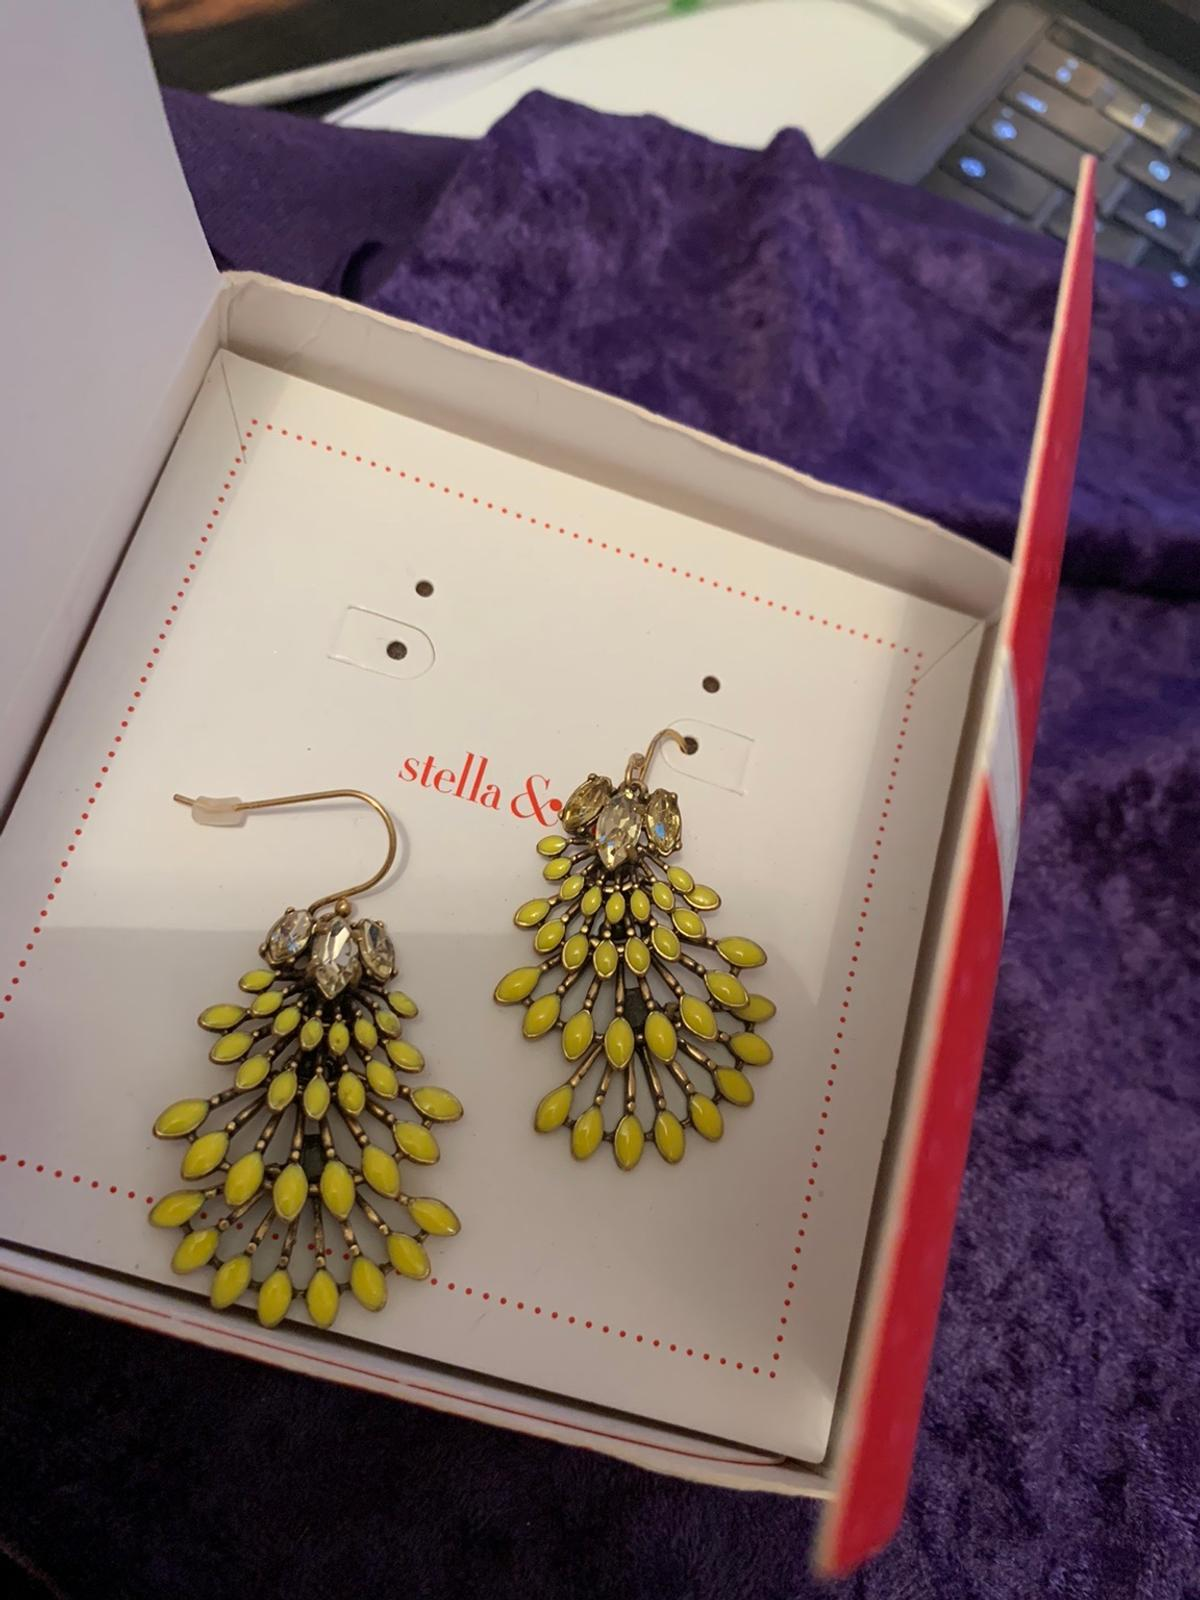 """Brand new in box Chandeliers yellow Norah Paid £40 Forgot I had them Stunning earrings 2"""" drop See my other items Stored in jewellery box Ideal gift in box Stella and dot"""